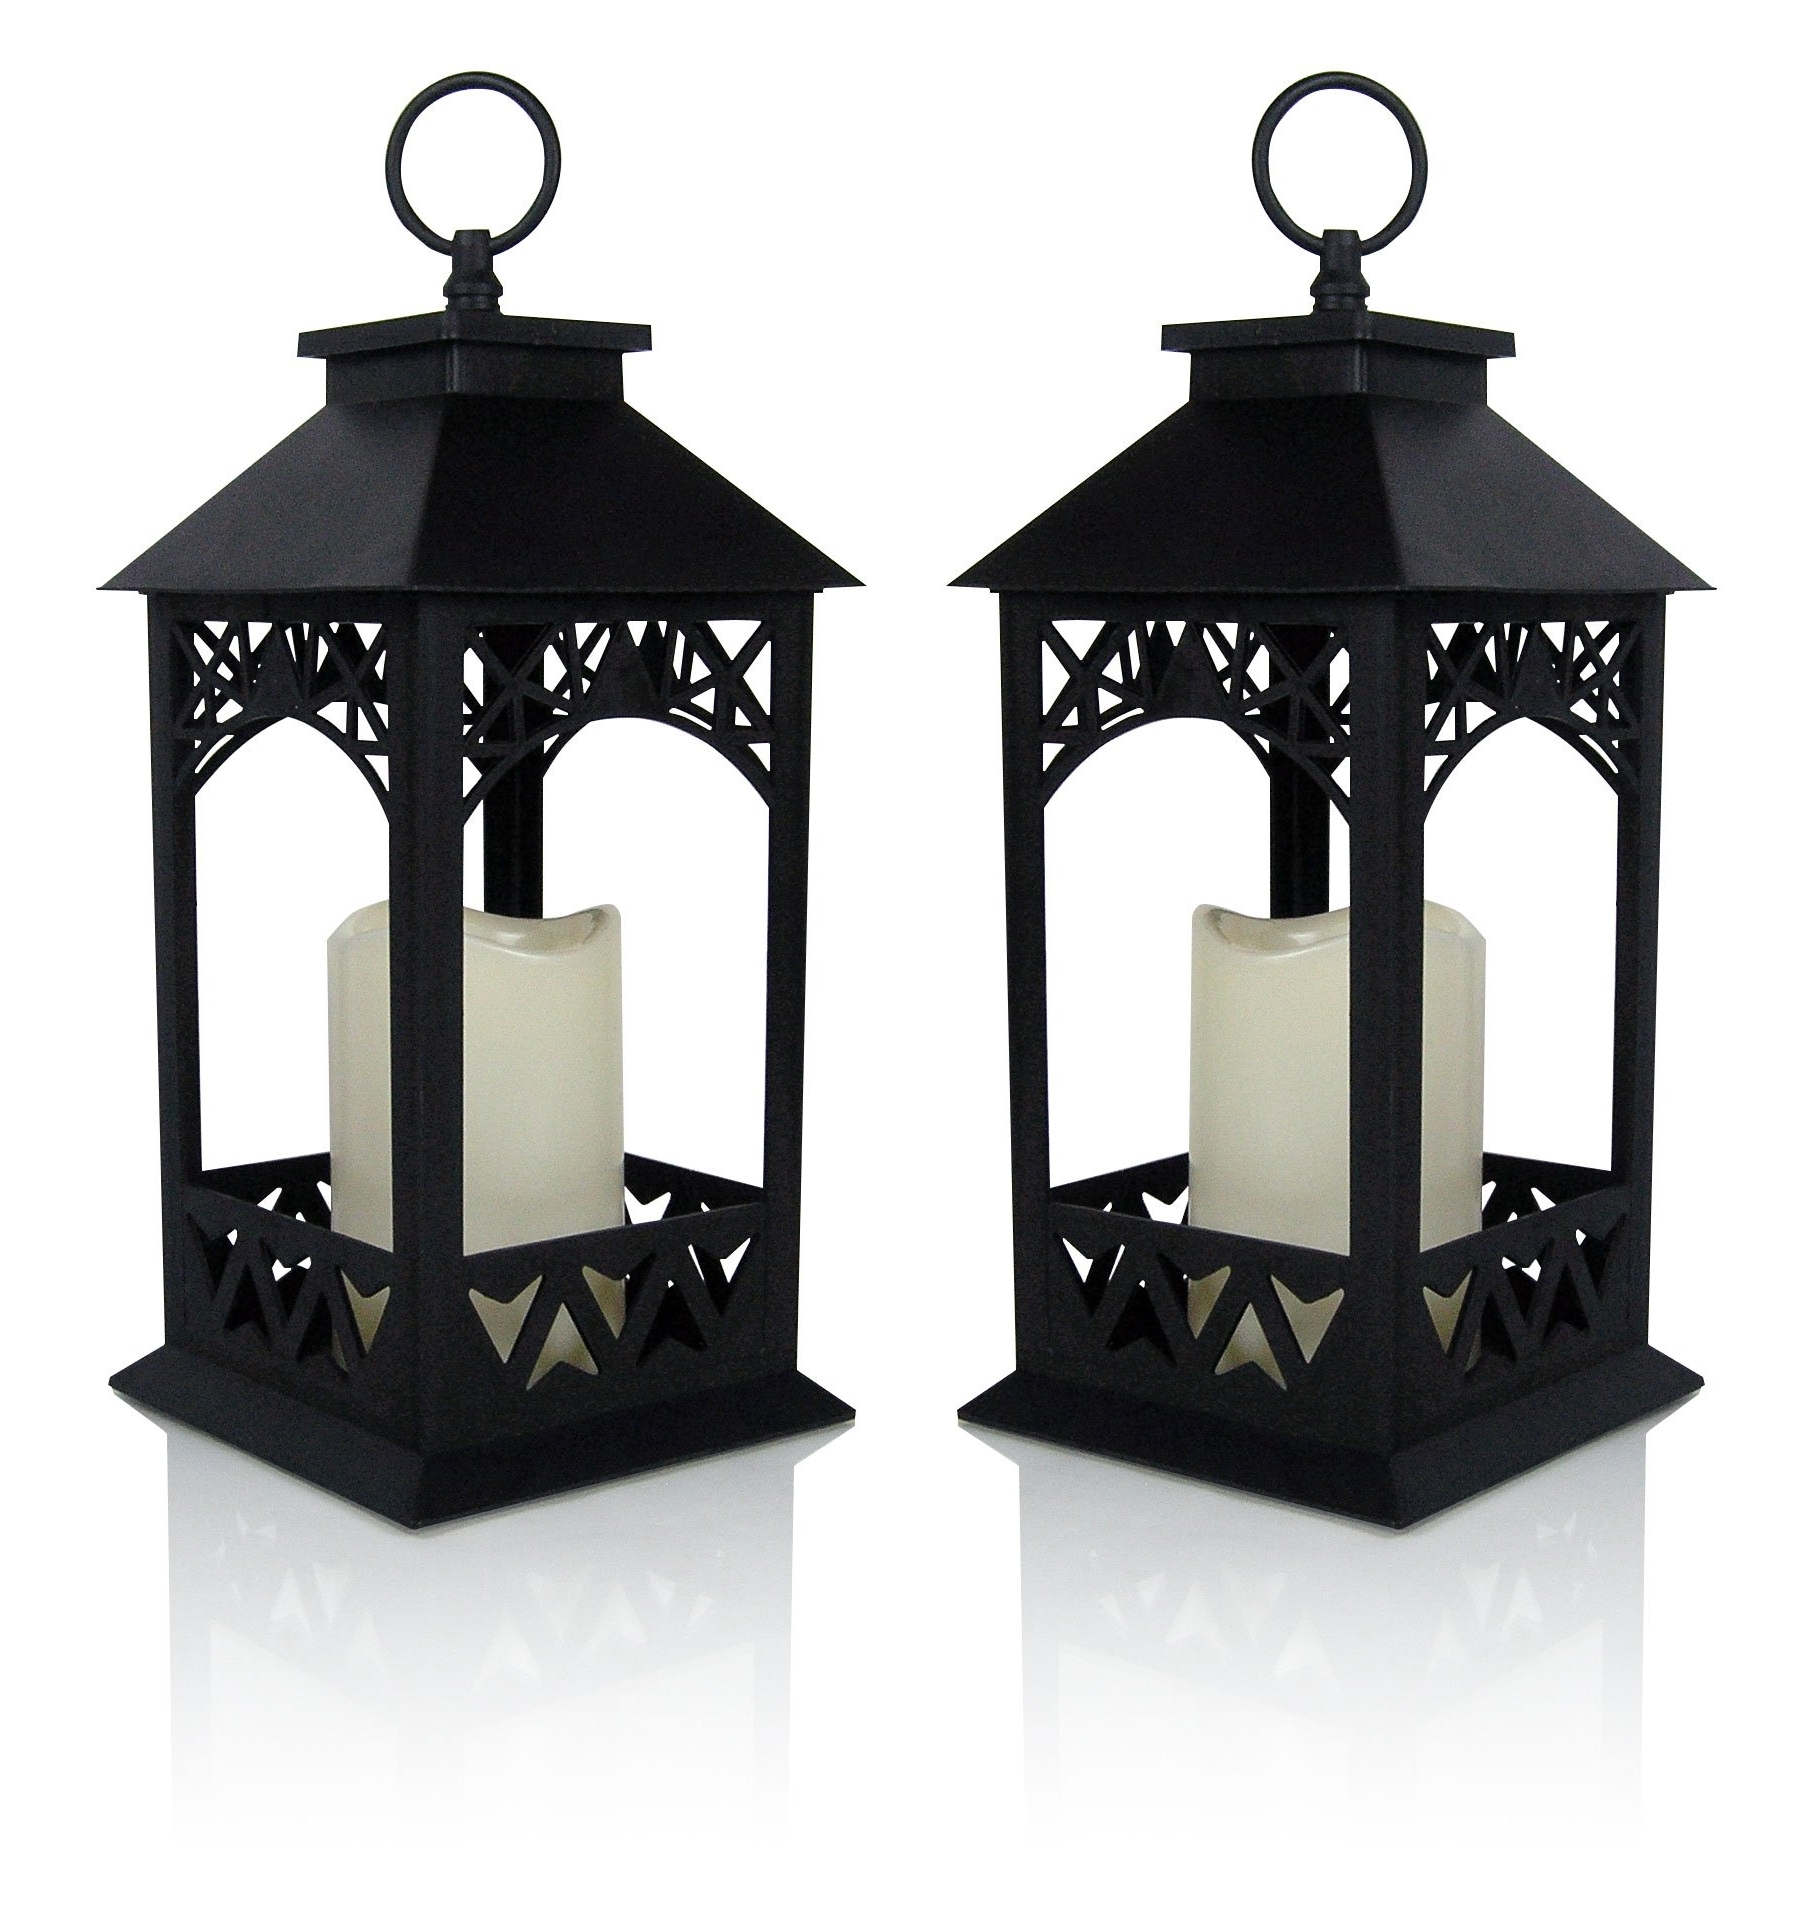 Latest Outdoor Lanterns For Pillars Intended For Cheap Outdoor Lanterns Candle, Find Outdoor Lanterns Candle Deals On (View 4 of 20)